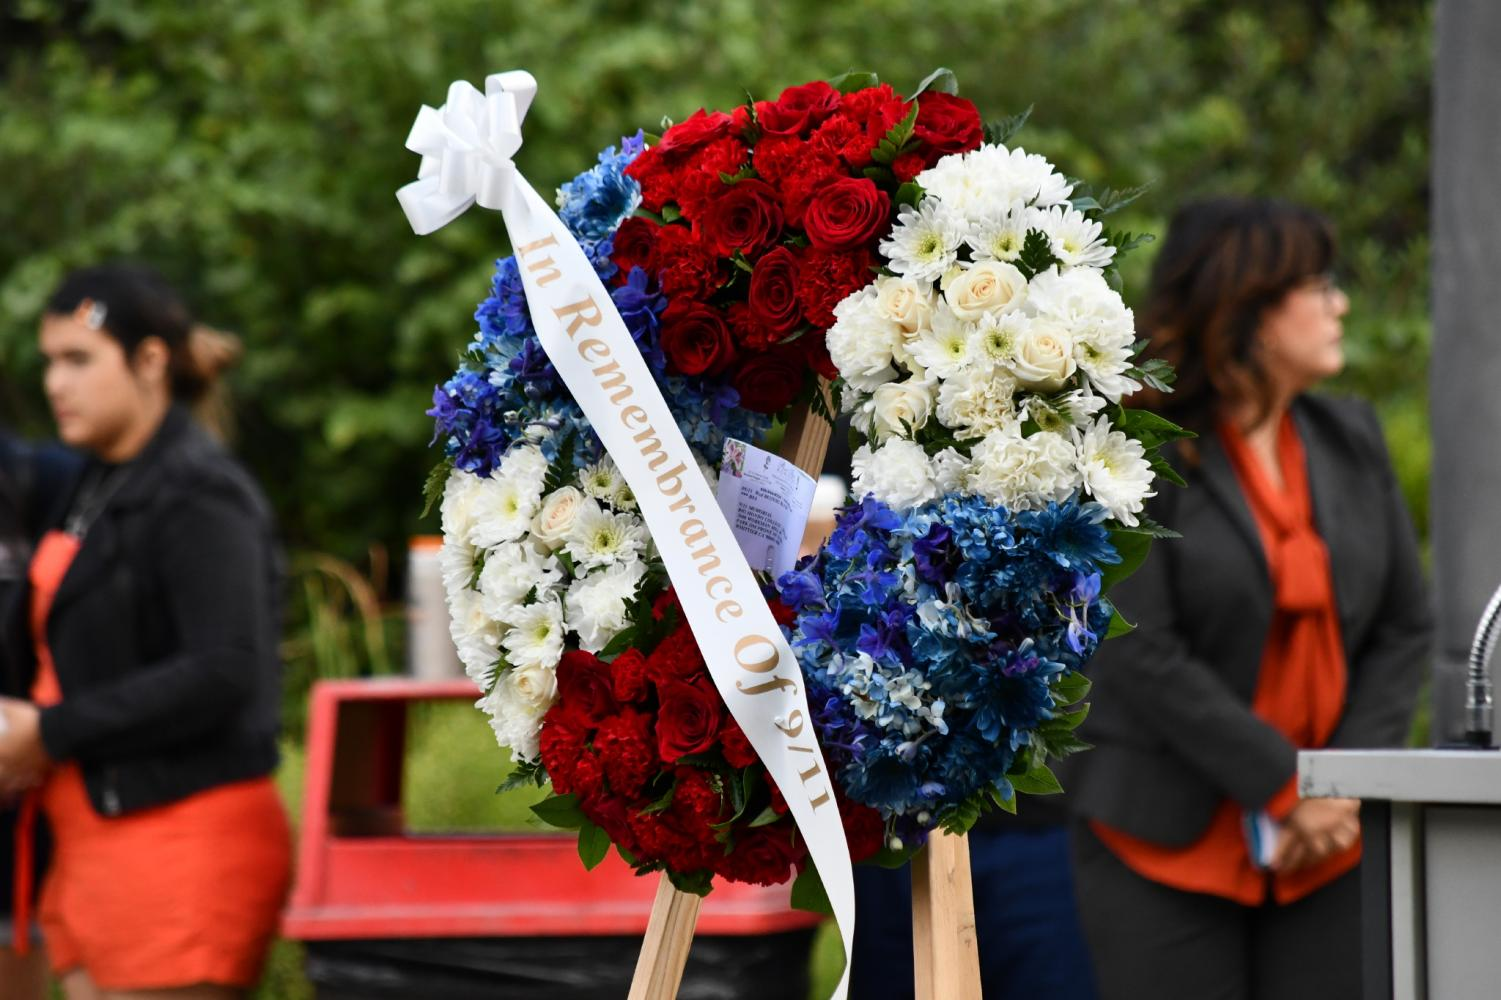 The Veterans Memorial at Rio Hondo College included a flower wreath that carried a message of